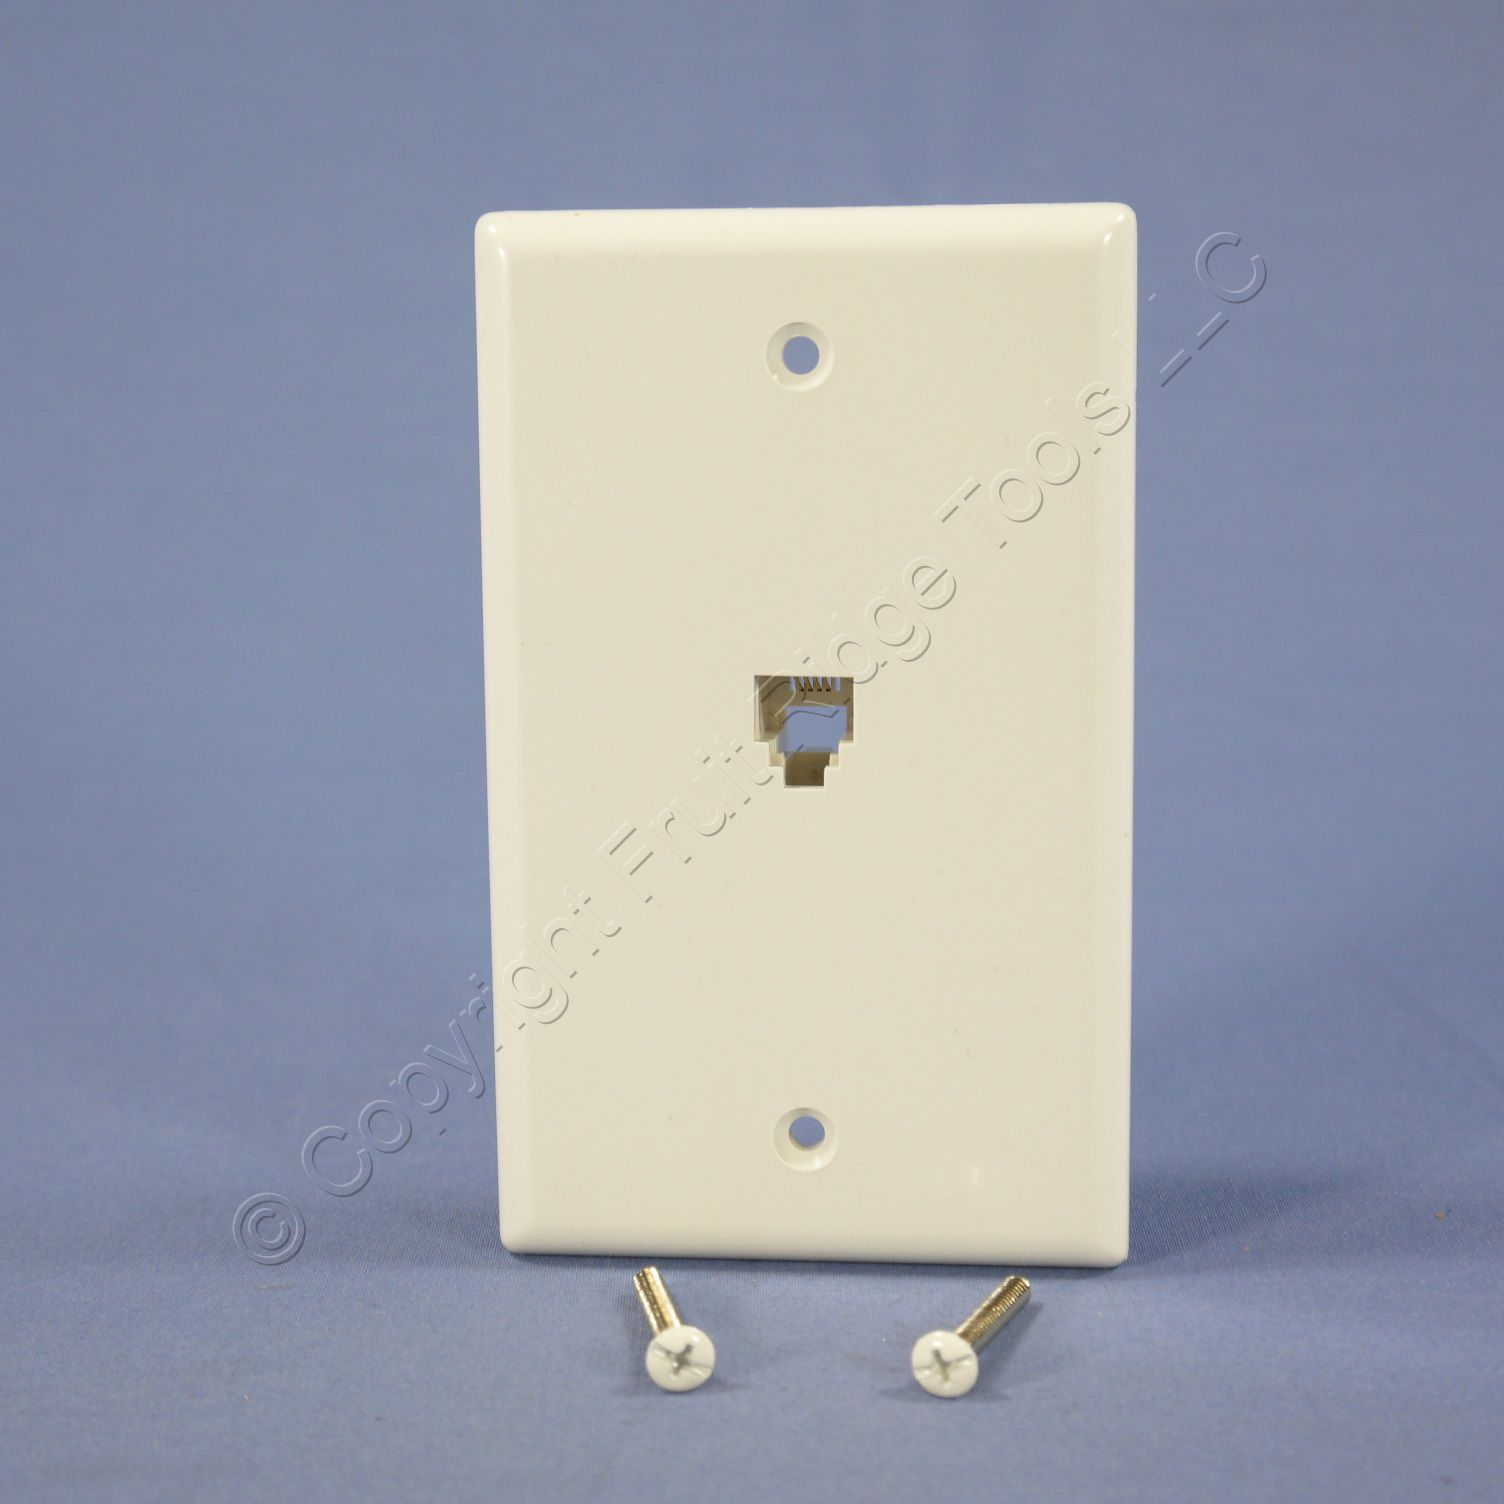 hight resolution of eagle white flush mount phone jack wall plate 4 conductor telephone rj11 3532 4w